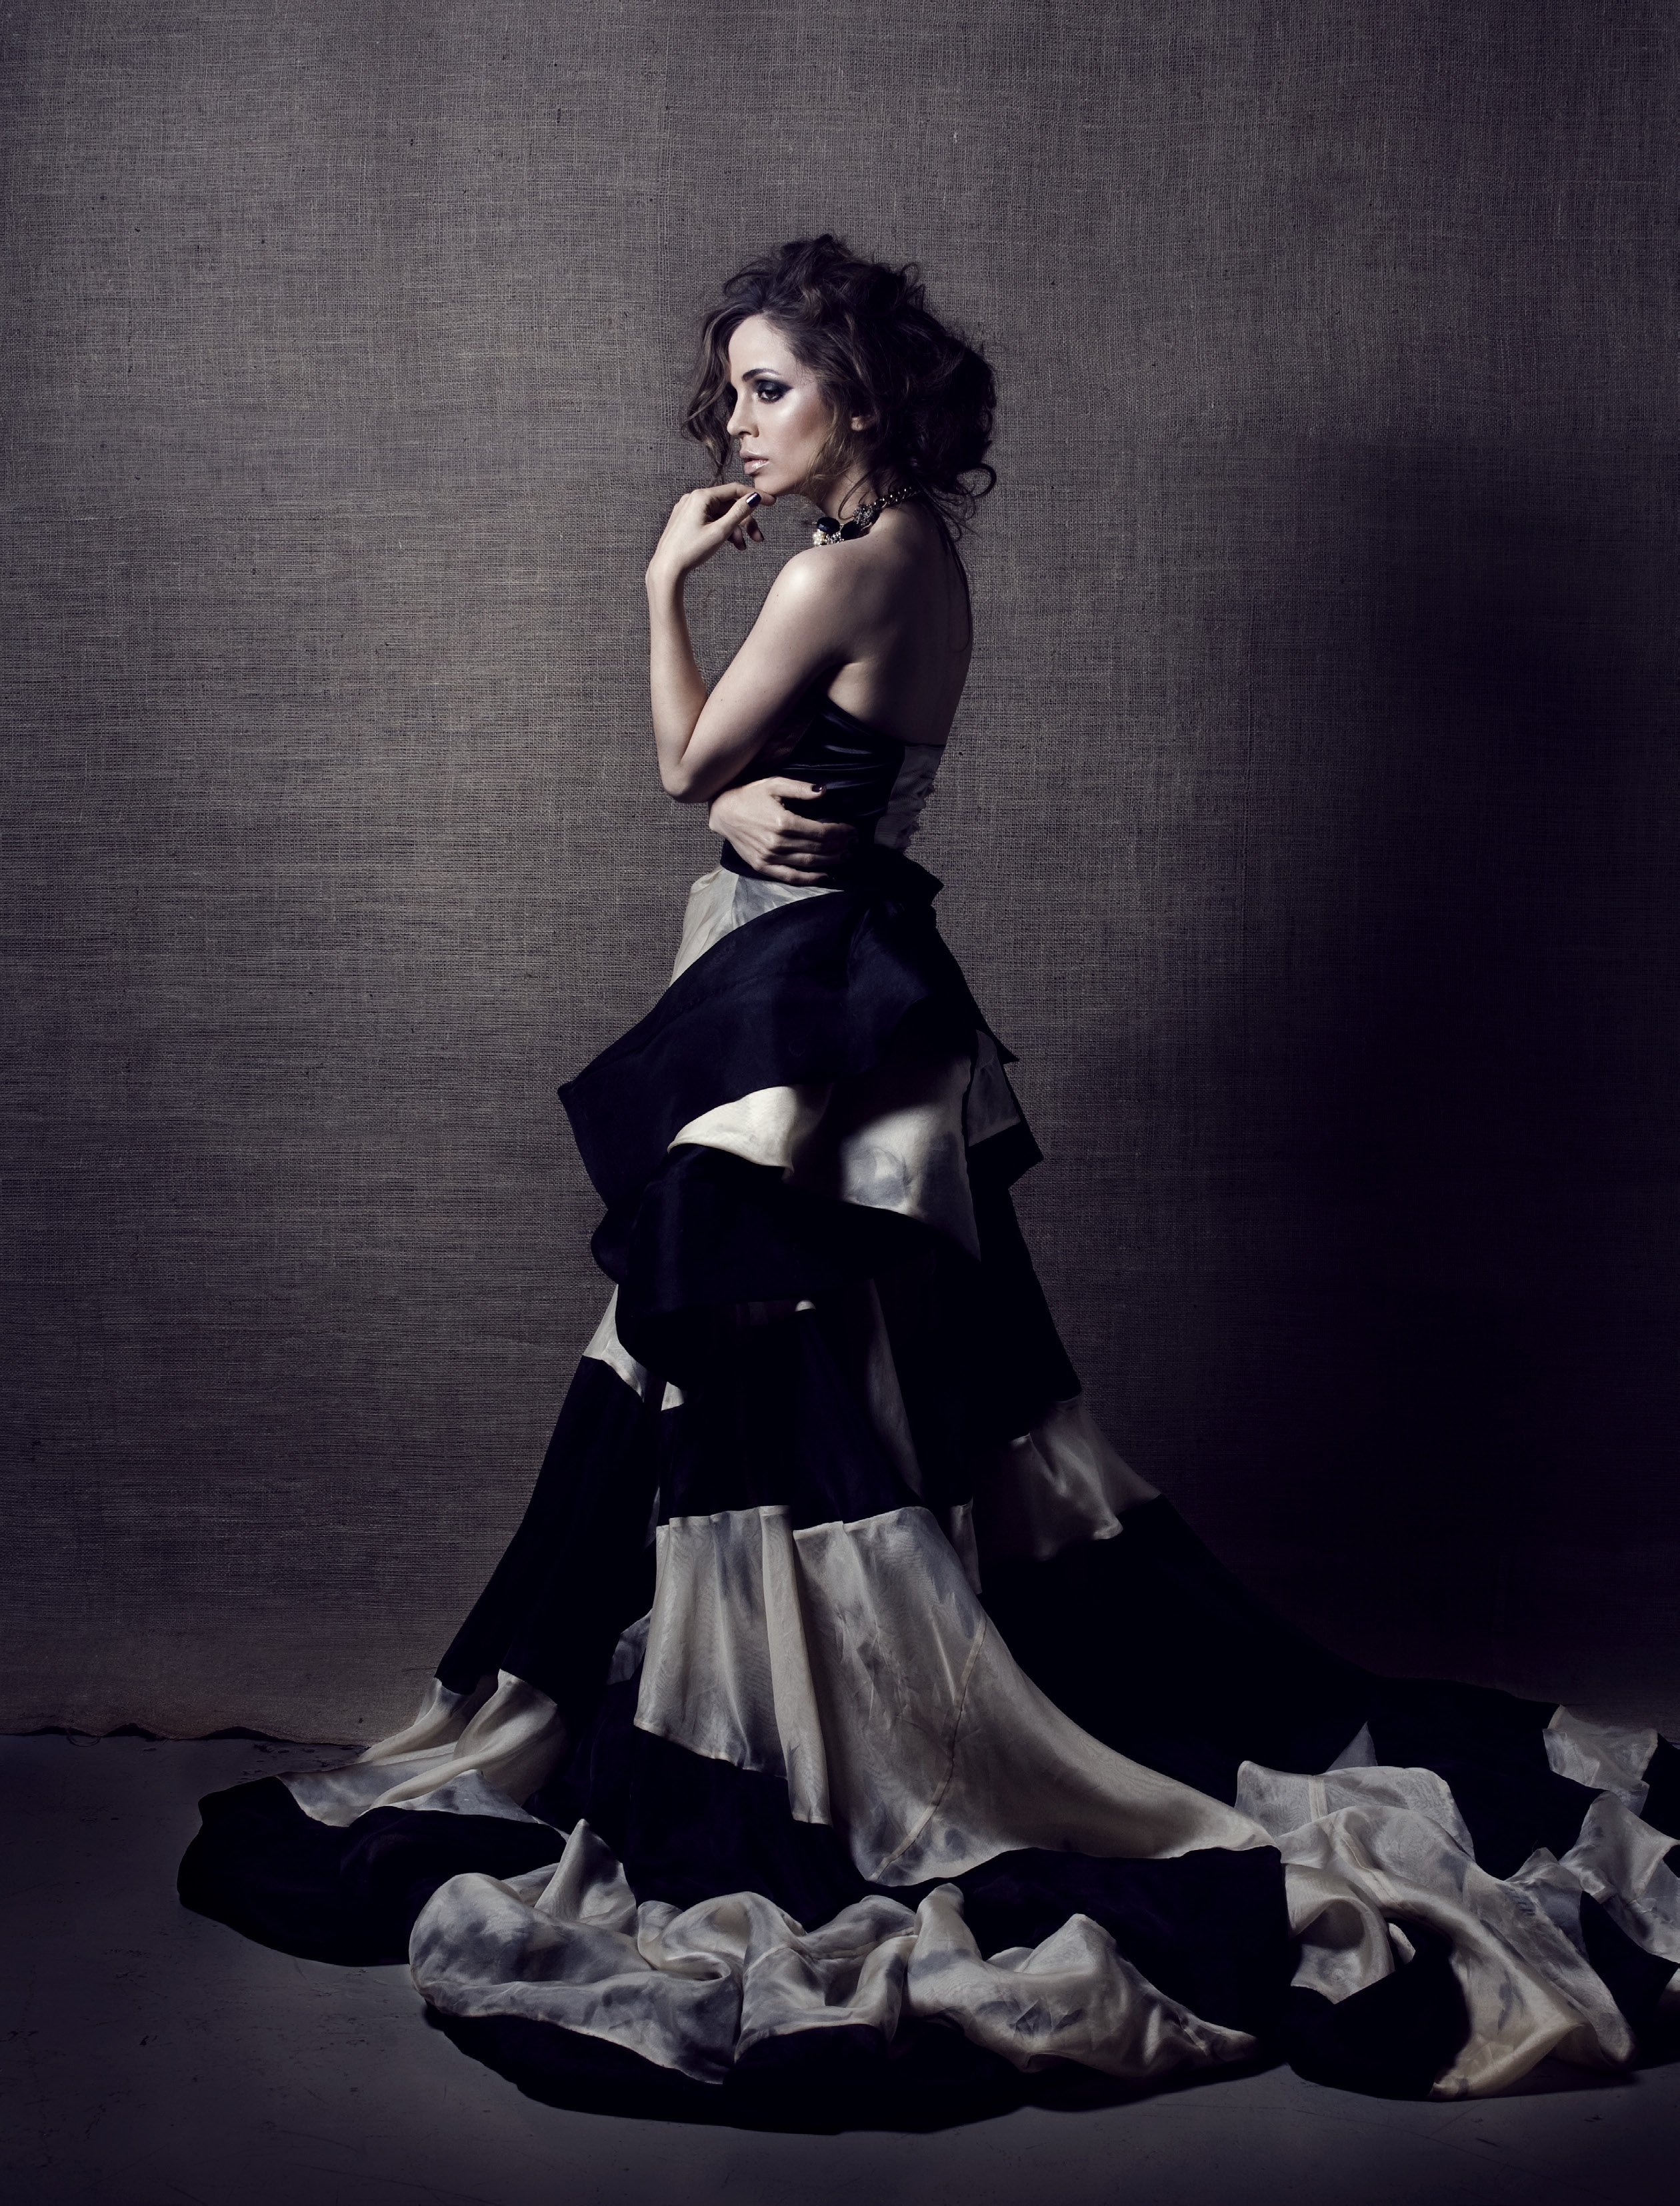 Eliza Dushku on Photoshoot